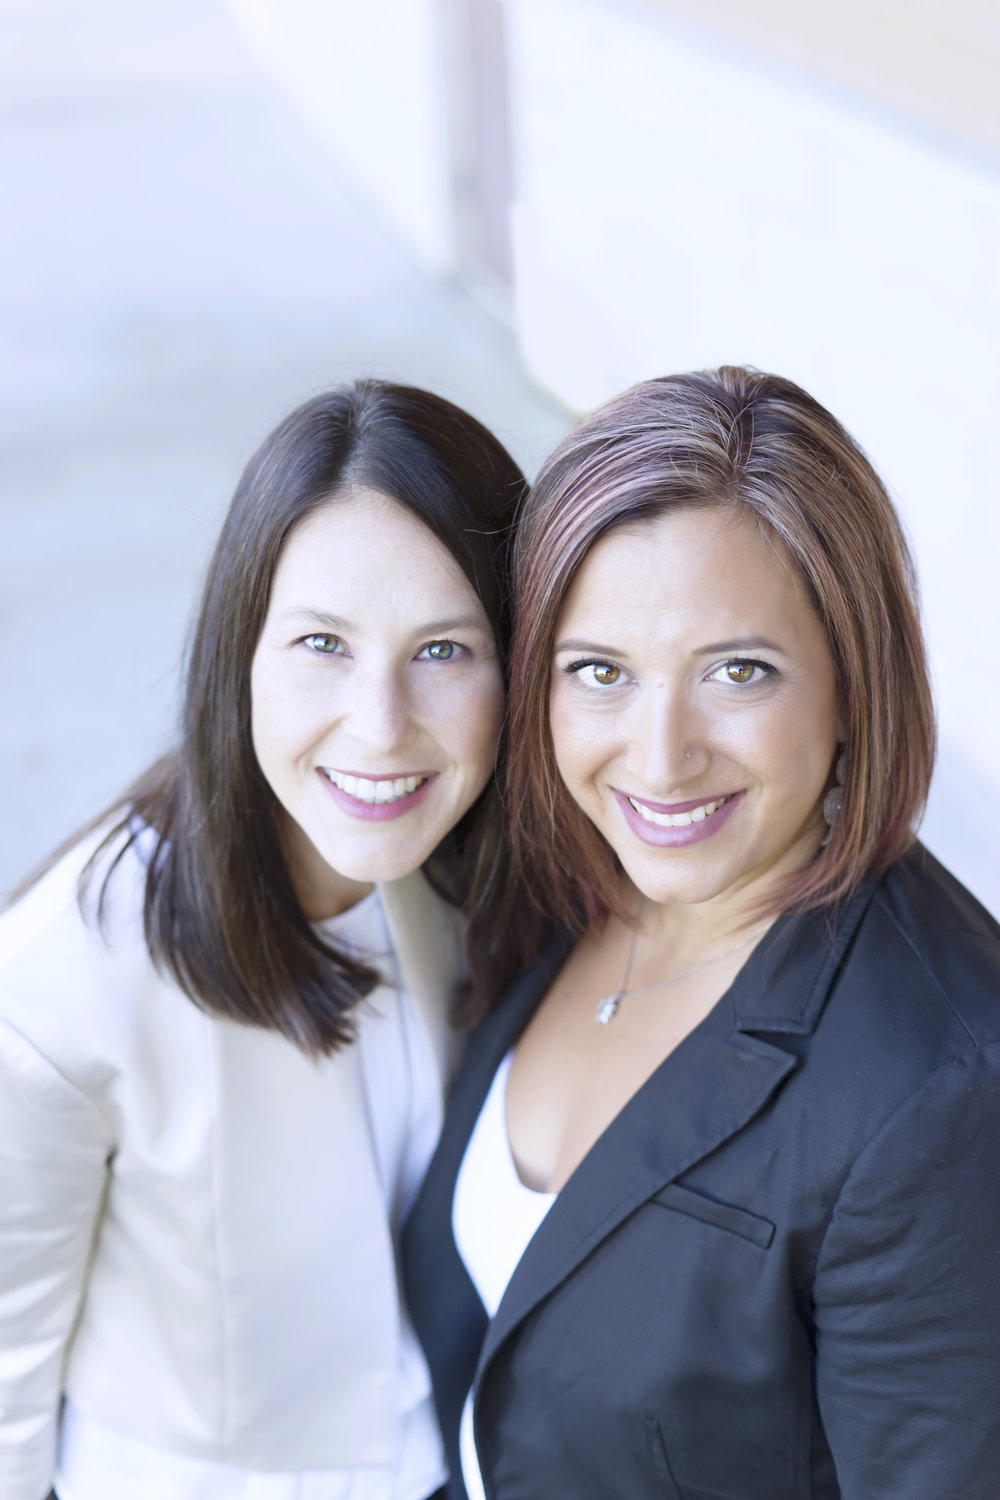 Useful insights for successful B2B marketing by B2B marketing specialists Liz Teodorini (left) and Tania Stadnik.